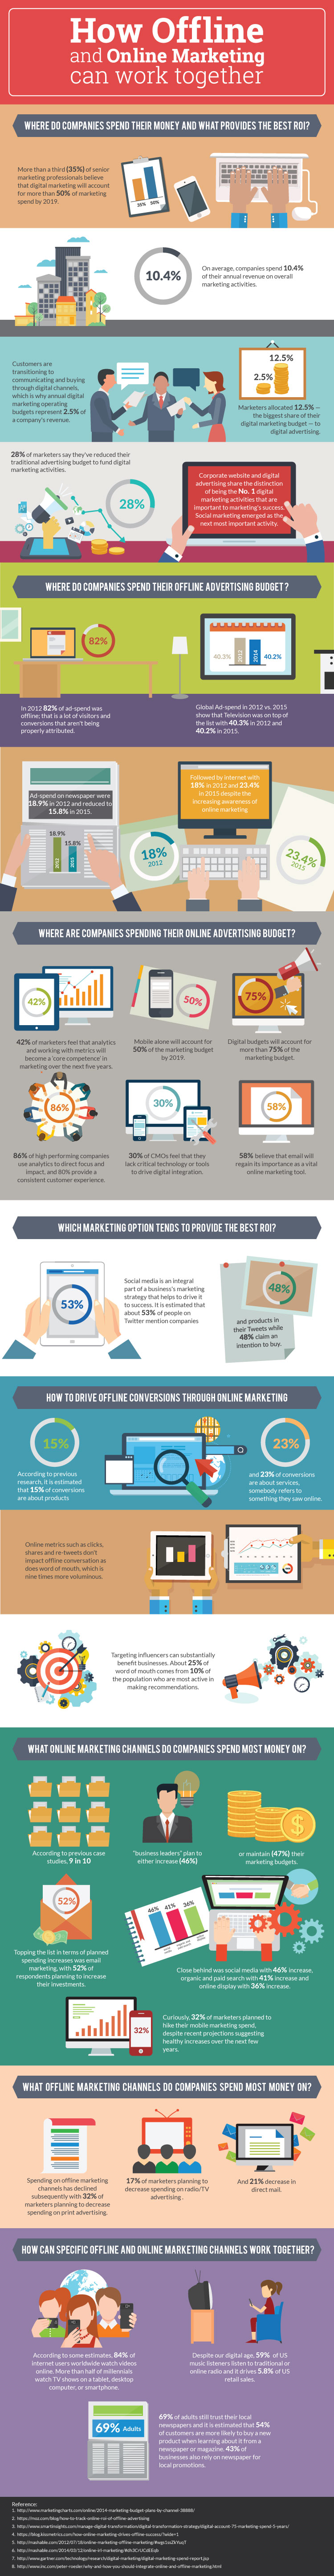 Infografik How Offline and Online Marketing Can Work Together